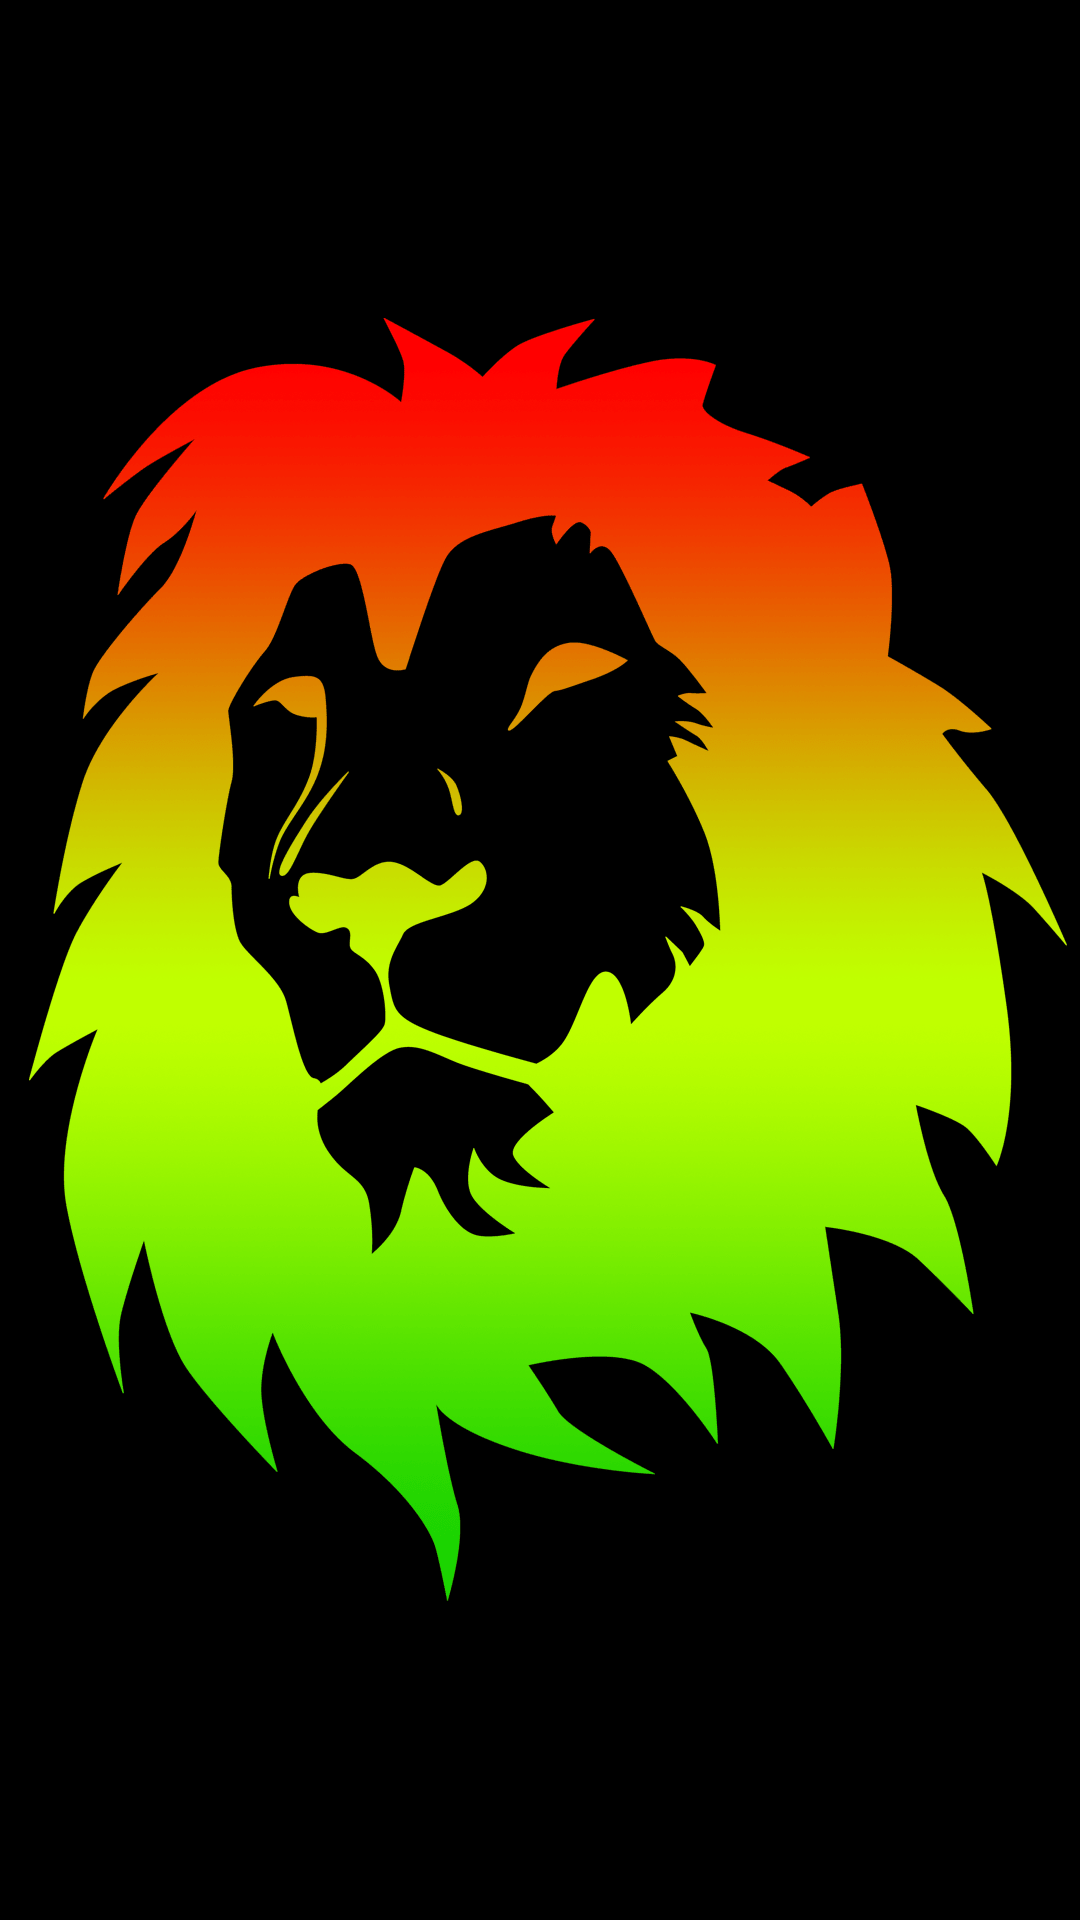 Cartoon Network Iphone Wallpapers Download Our Hd Rasta Color Lion Wallpaper For Android